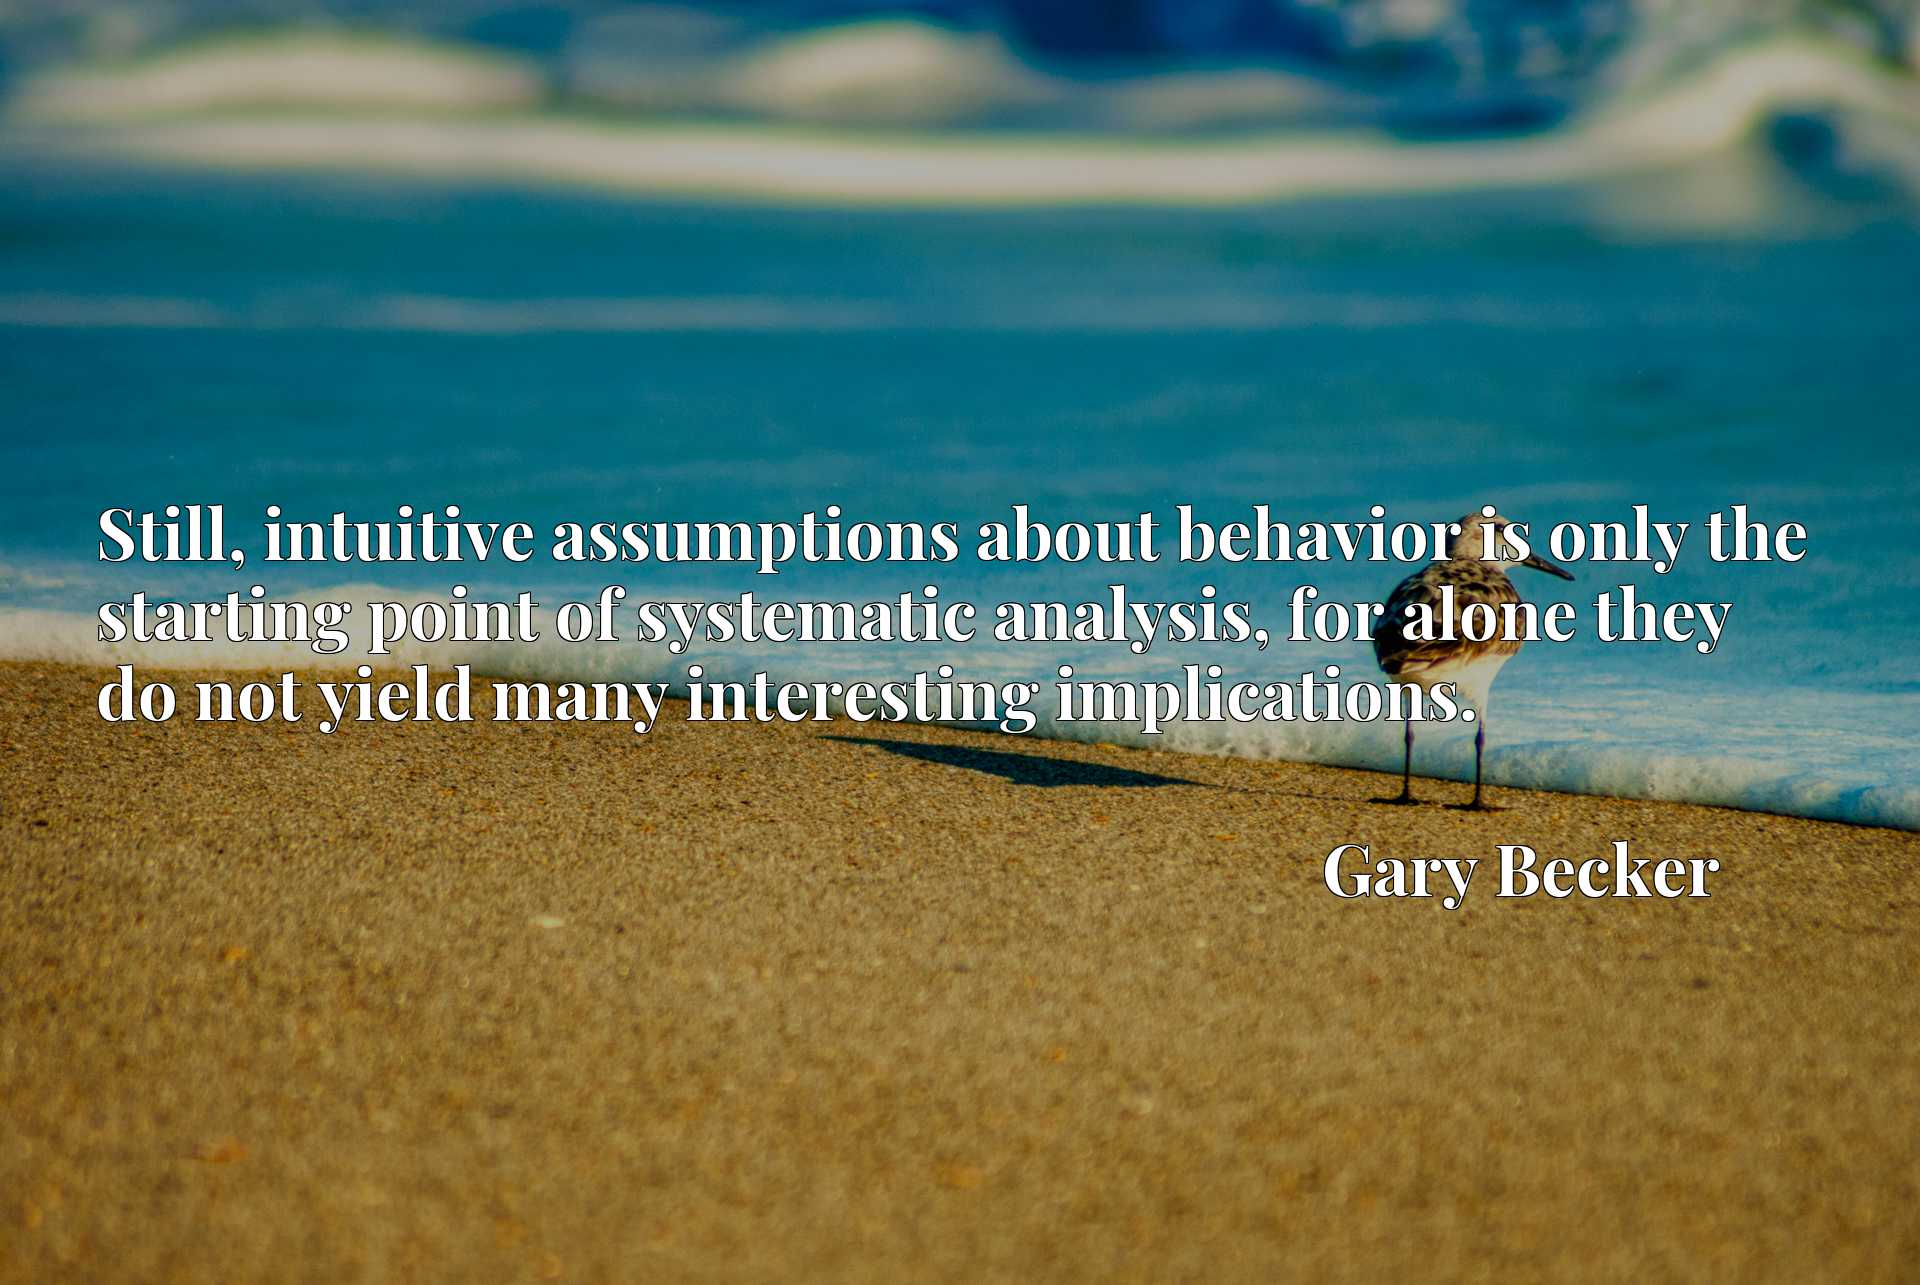 Still, intuitive assumptions about behavior is only the starting point of systematic analysis, for alone they do not yield many interesting implications.